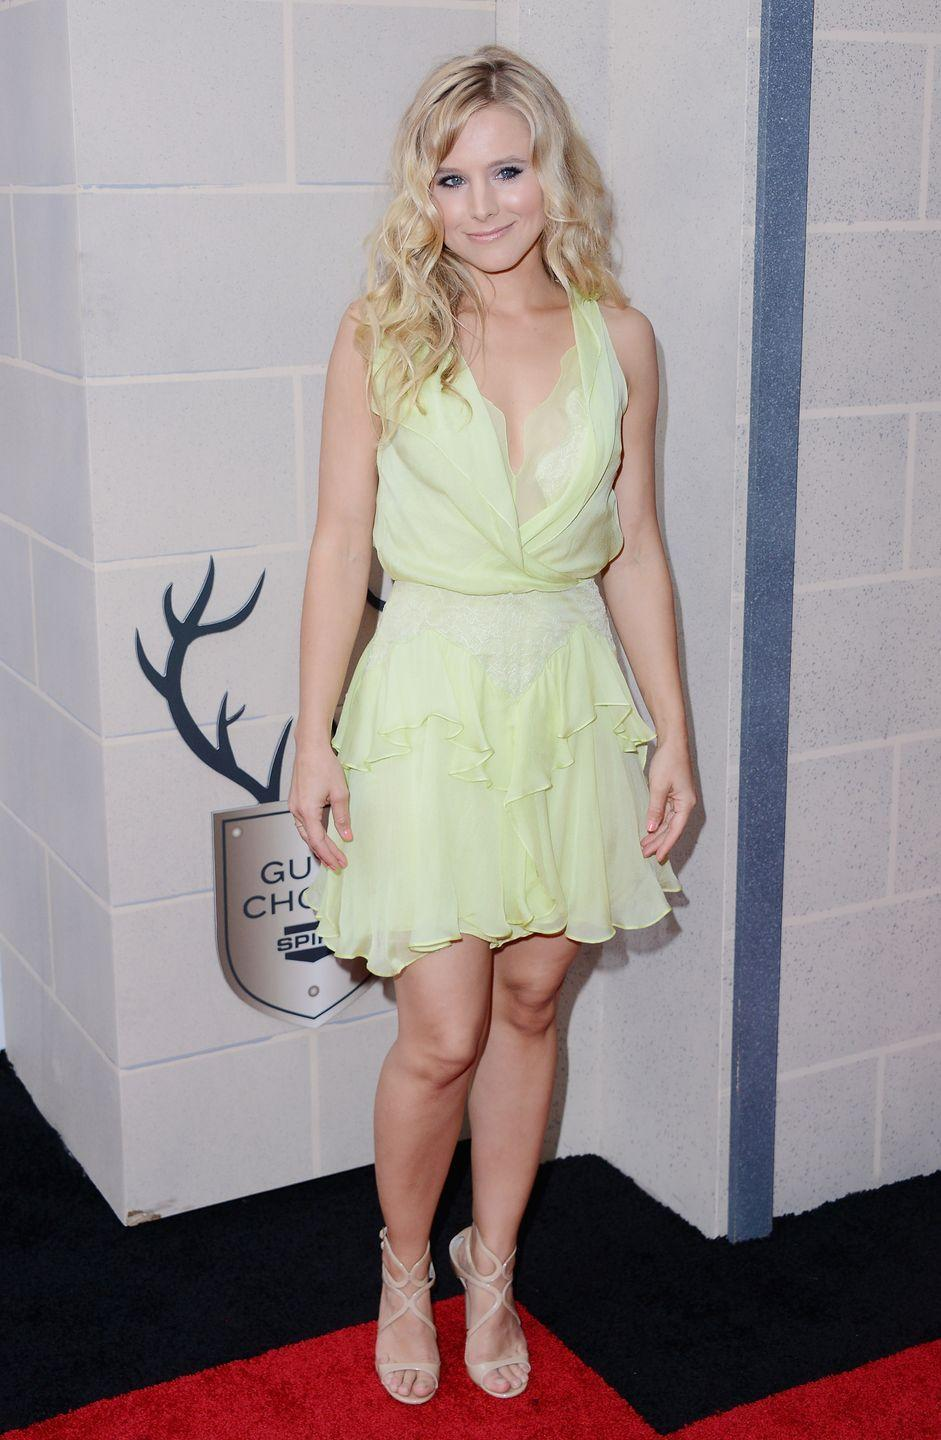 <p>While Kristen Bell is known for being the voice of Anna from<em> Frozen</em>, we think she looks just like our favorite Disney fairy in this light-green dress she wore in 2012.</p>